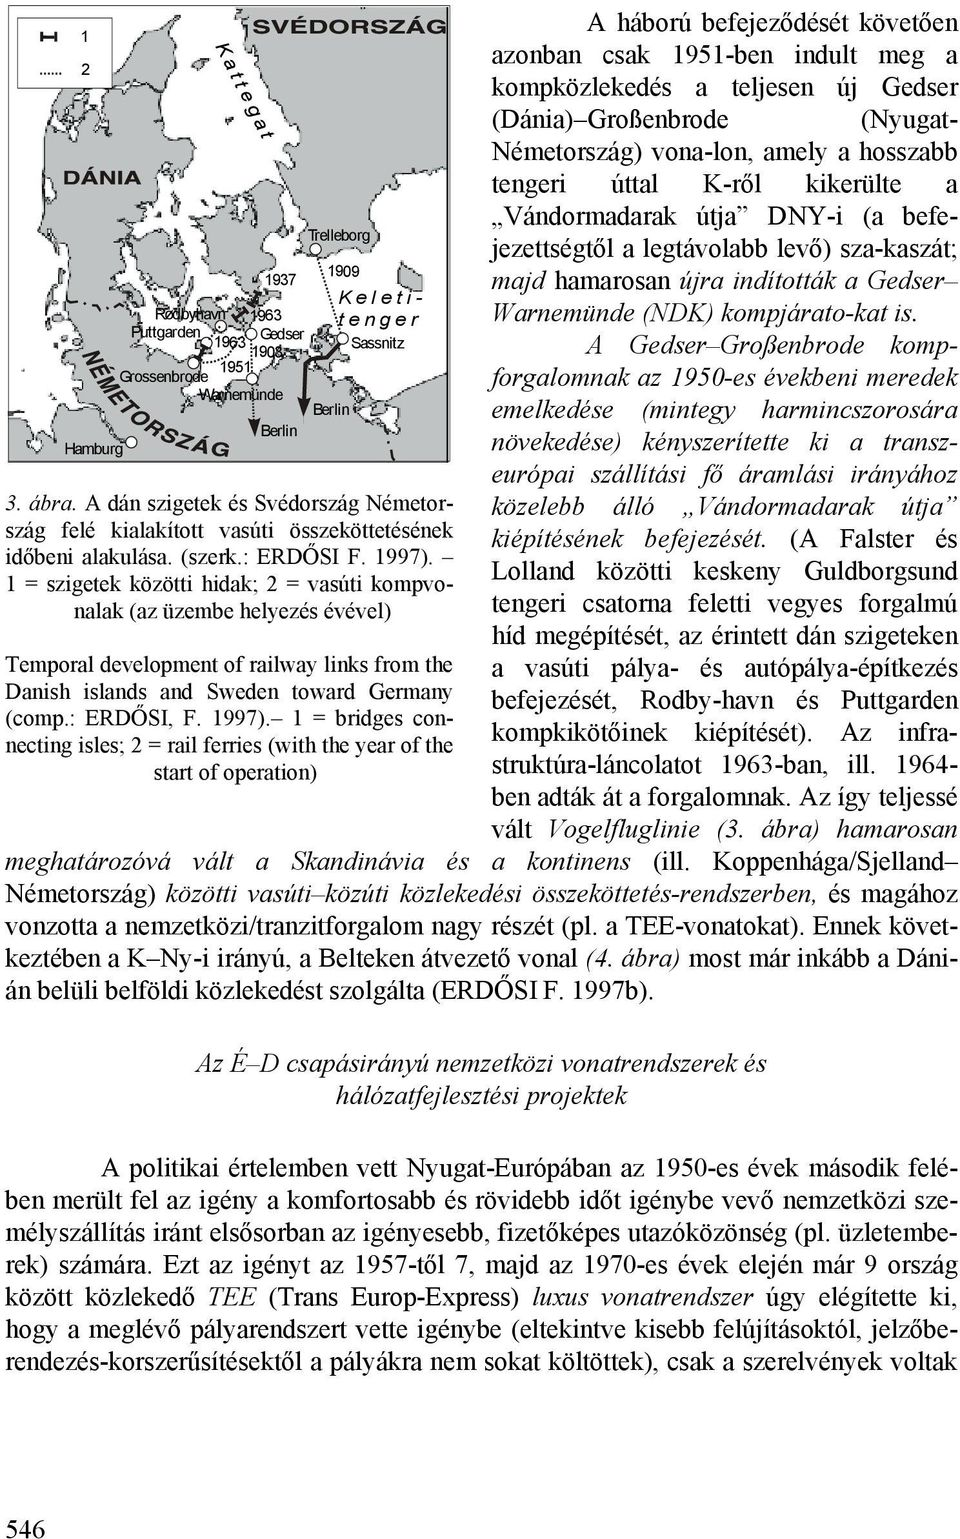 1 = szigetek közötti hidak; 2 = vasúti kompvonalak (az üzembe helyezés évével) Temporal development of railway links from the Danish islands and Sweden toward Germany (comp.: ERDŐSI, F. 1997).